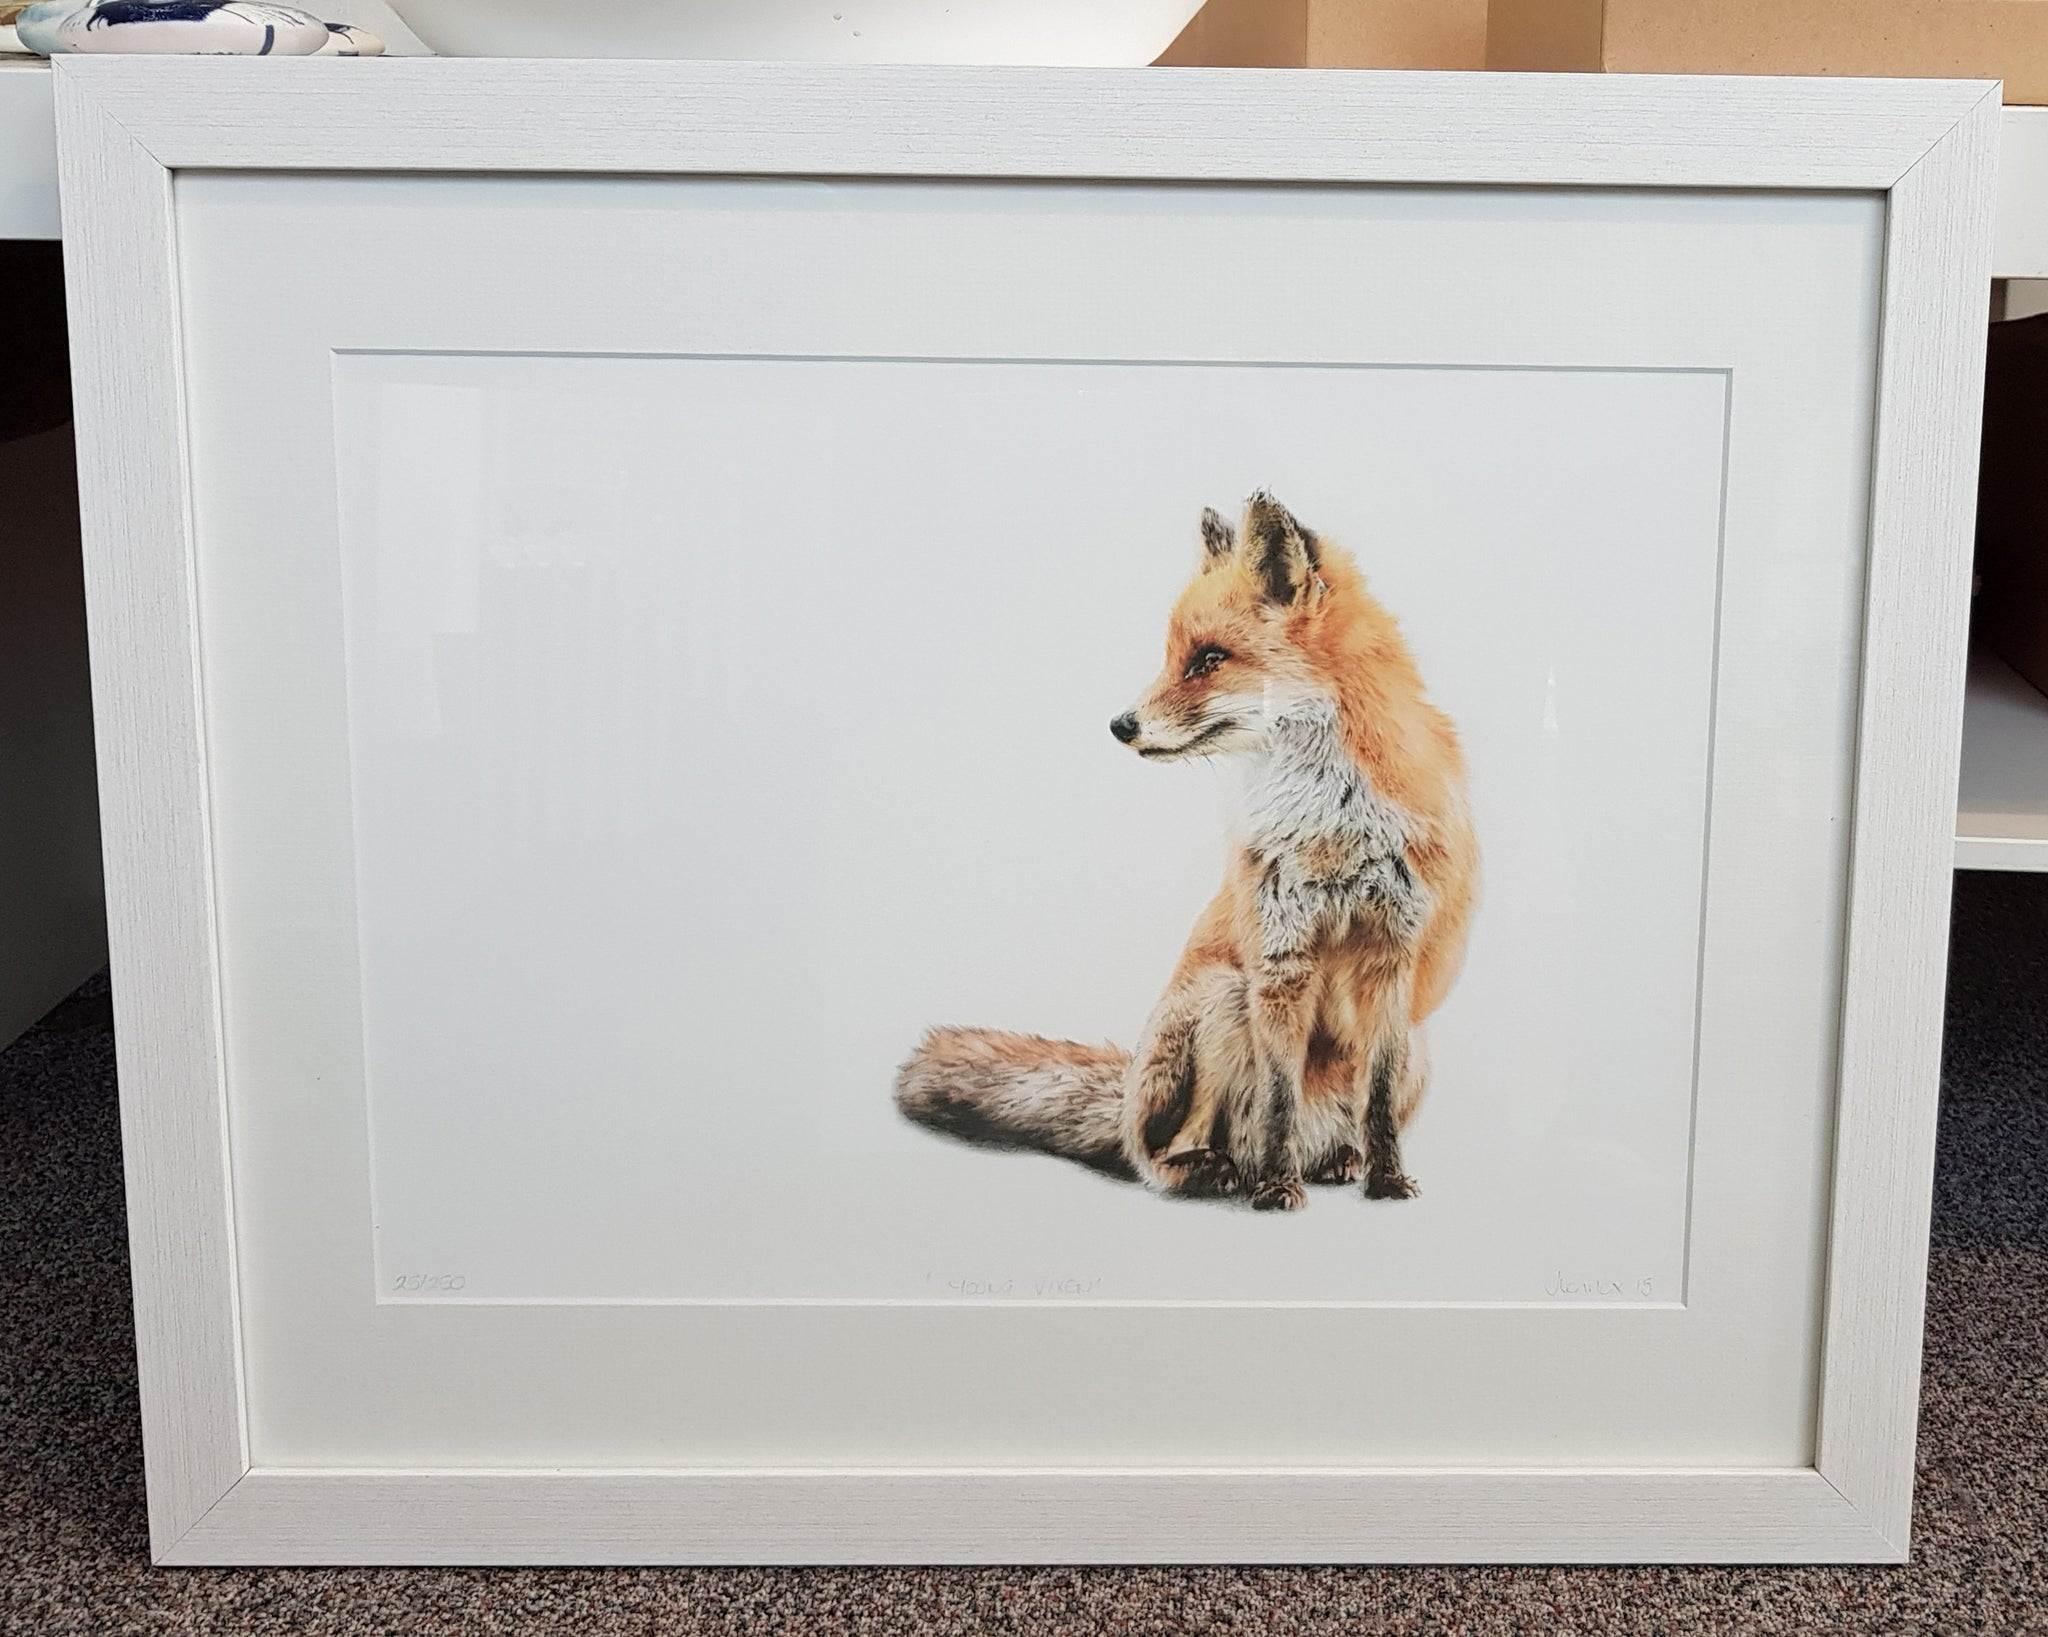 Framed Limited Edition Print By Jessica Lennox S74JL58